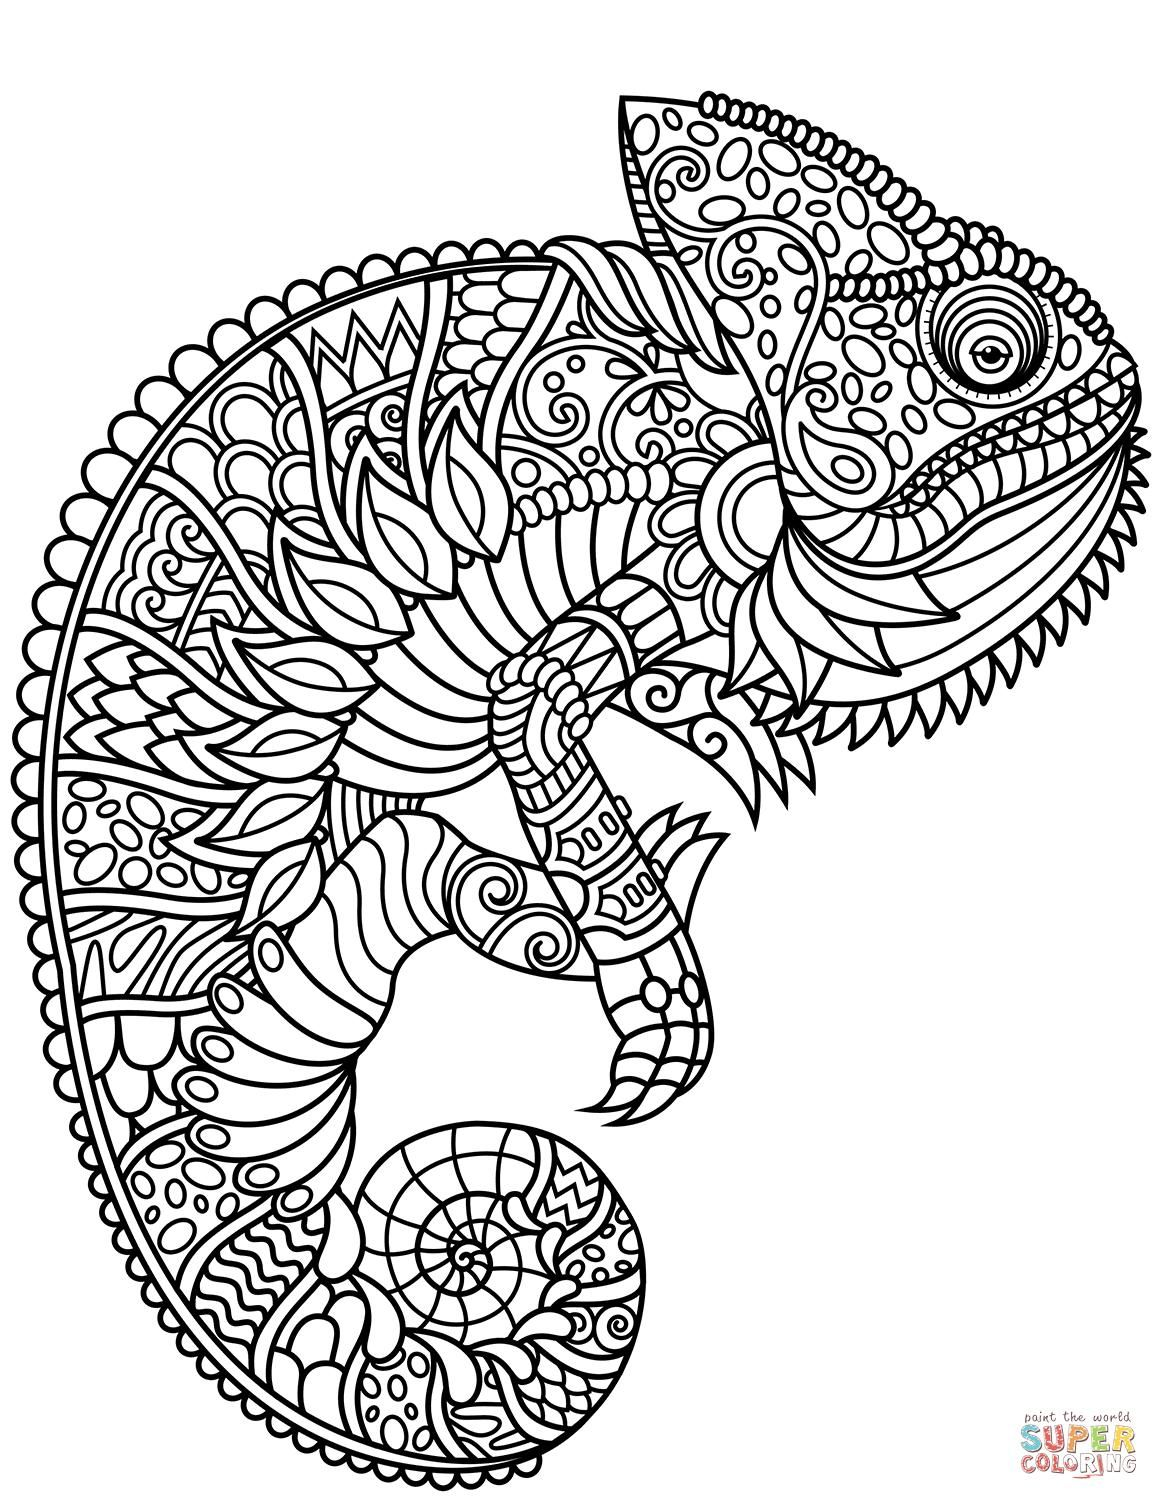 42 Coloring Page Zentangle Animal Coloring Pages Coloring Pages Mandala Coloring Pages